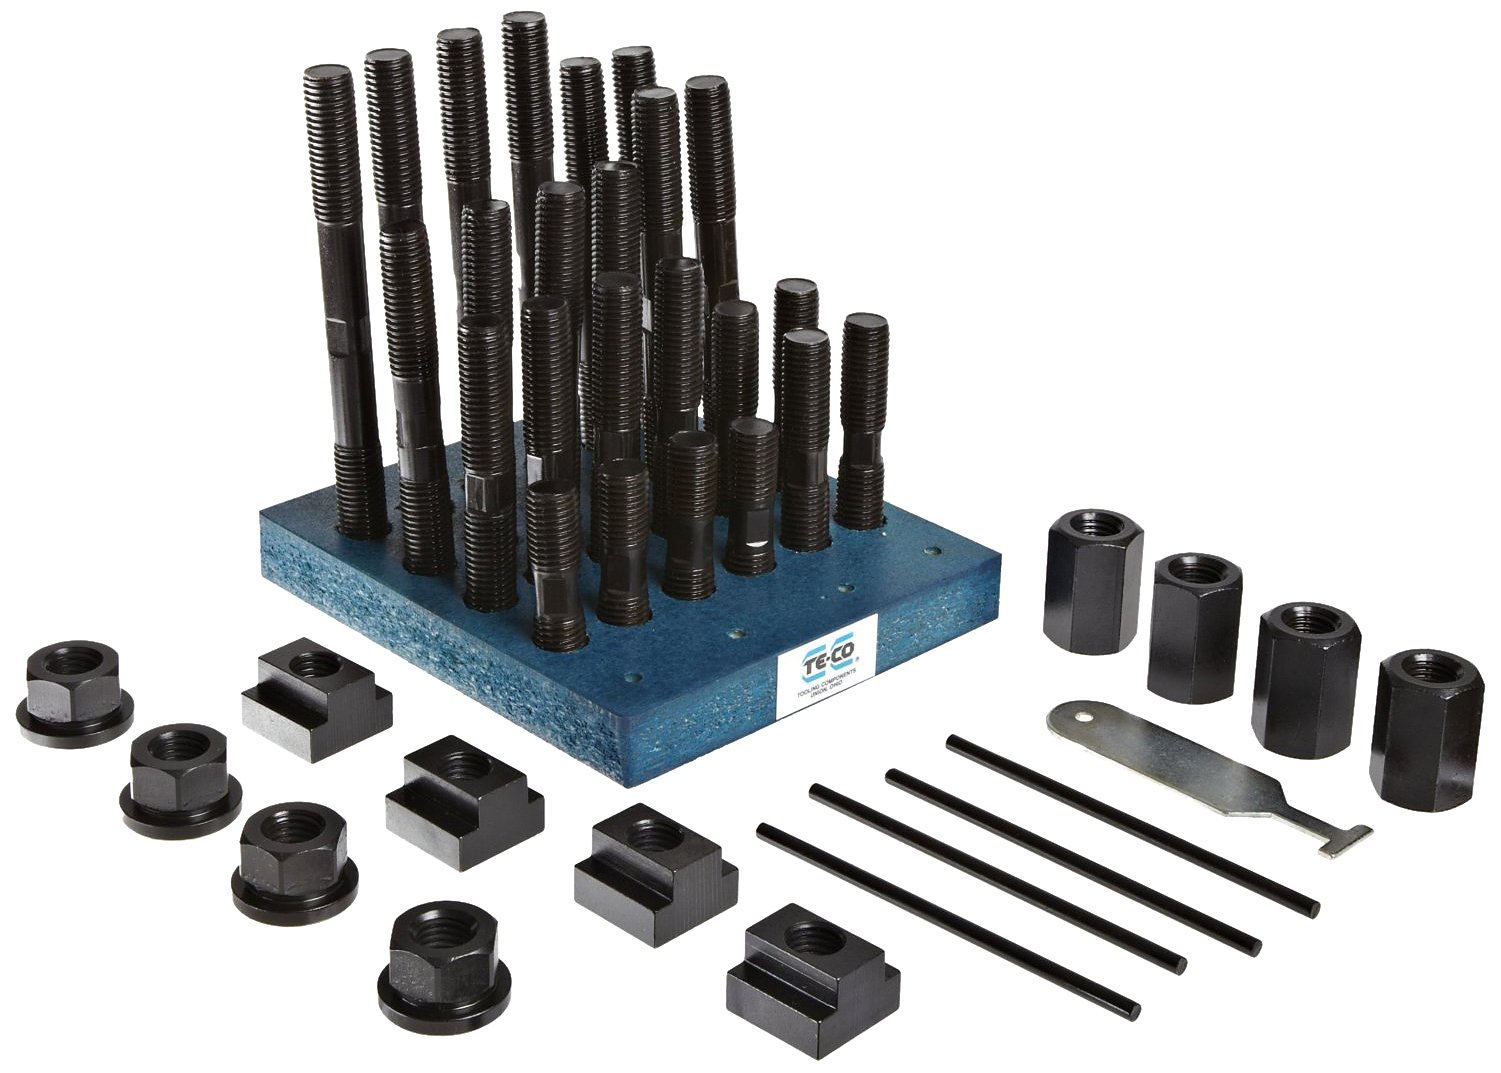 Te-Co 20610 38 Piece T-Nut and Stud Kit, 5/8''-11 Stud x 13/16'' Table T-Slot by Small Parts